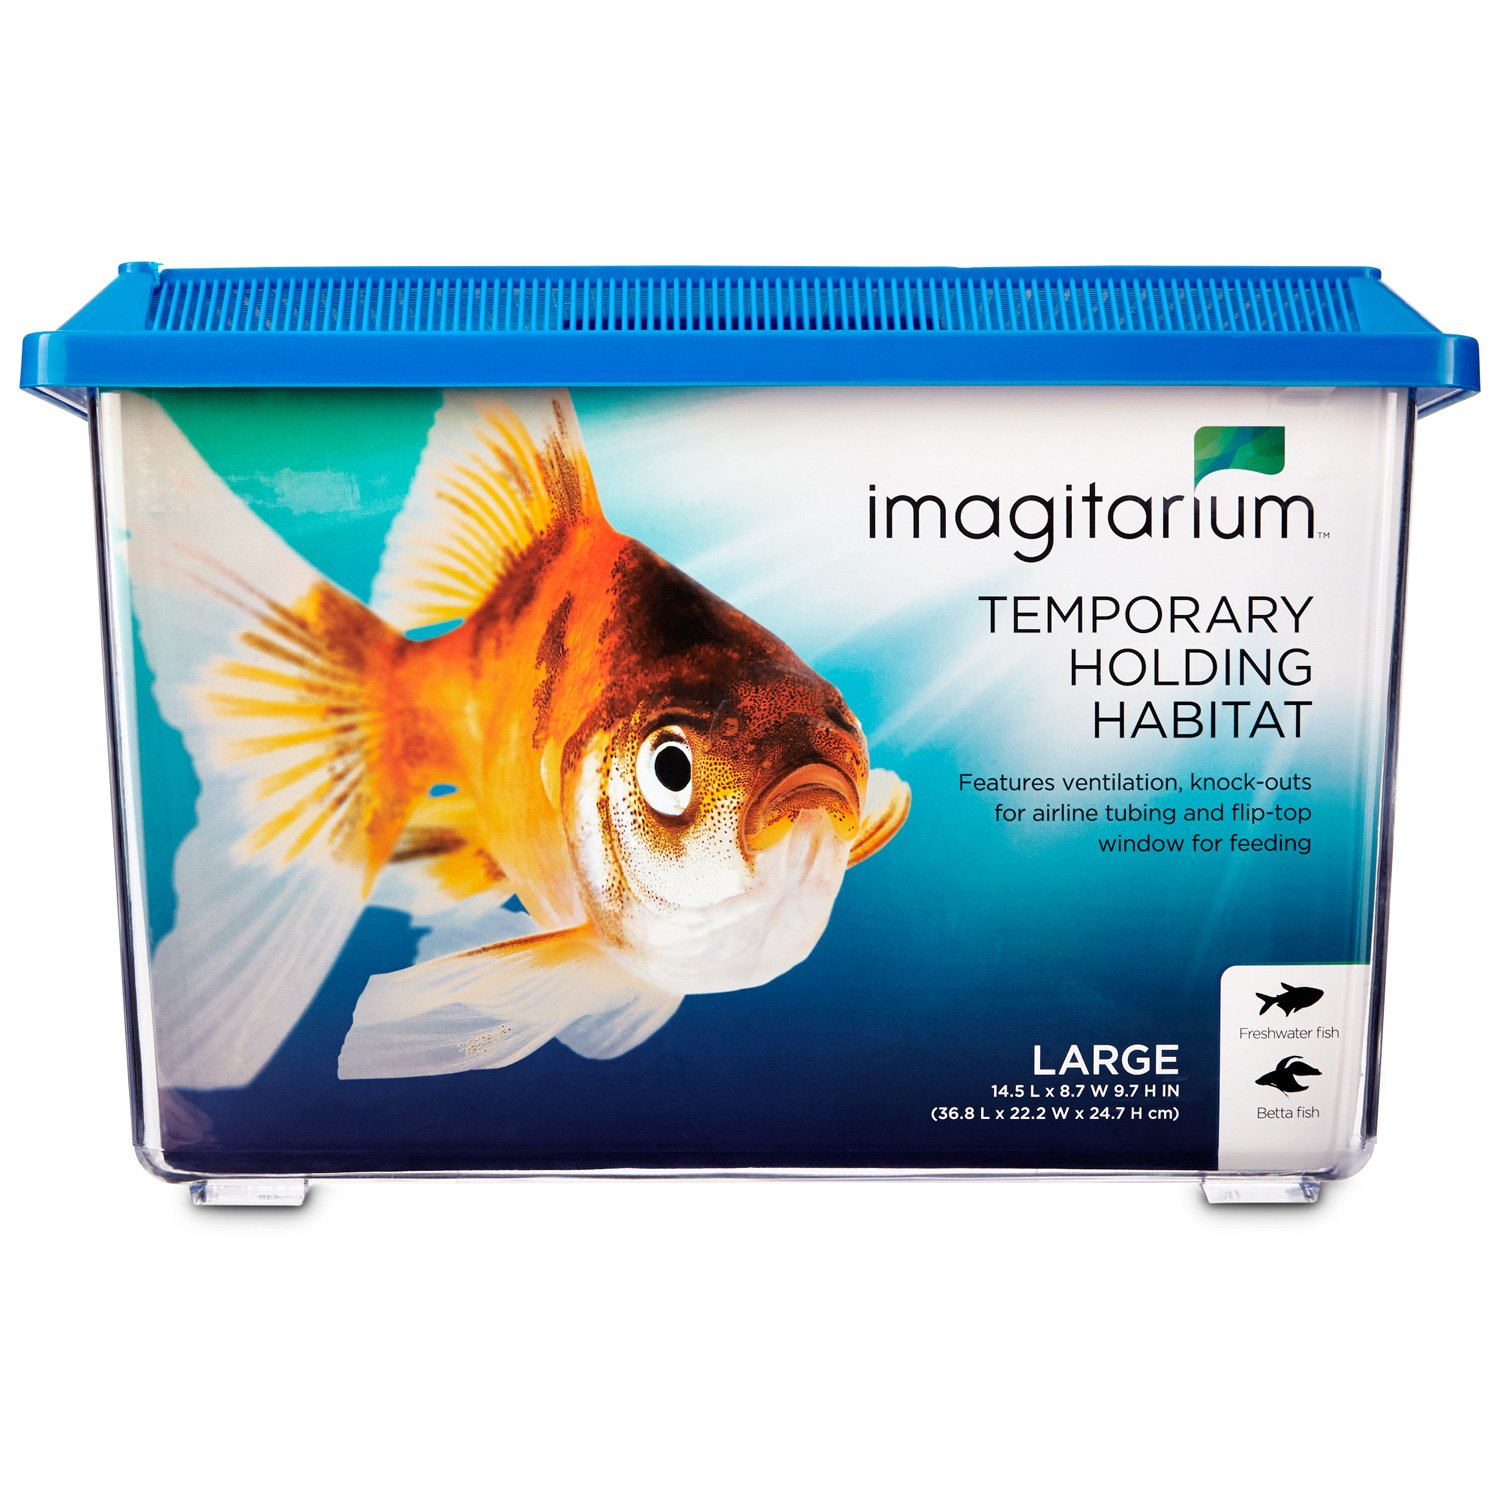 Freshwater fish tank upkeep - Imagitarium Pet Keeper For Aquarium Fish Large